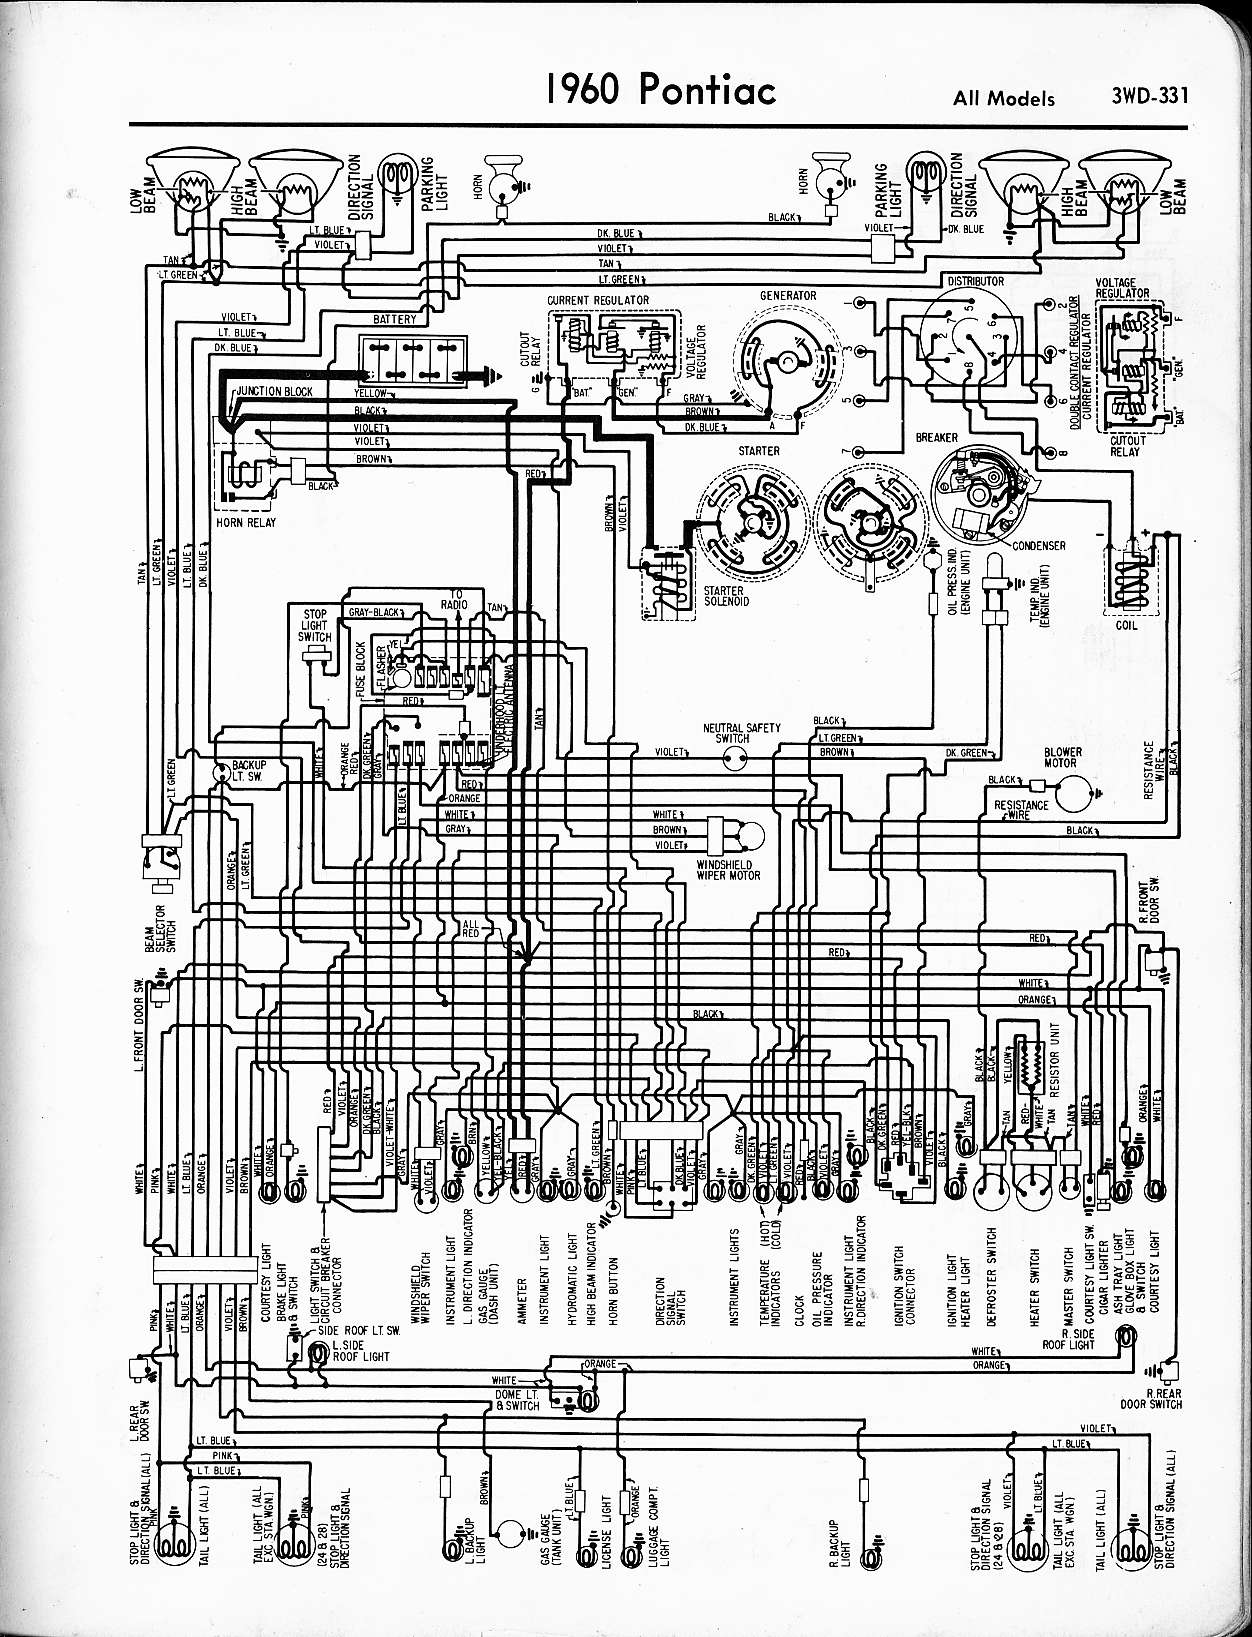 1977 pontiac catalina wiring diagram trusted wiring diagram u2022 rh soulmatestyle co